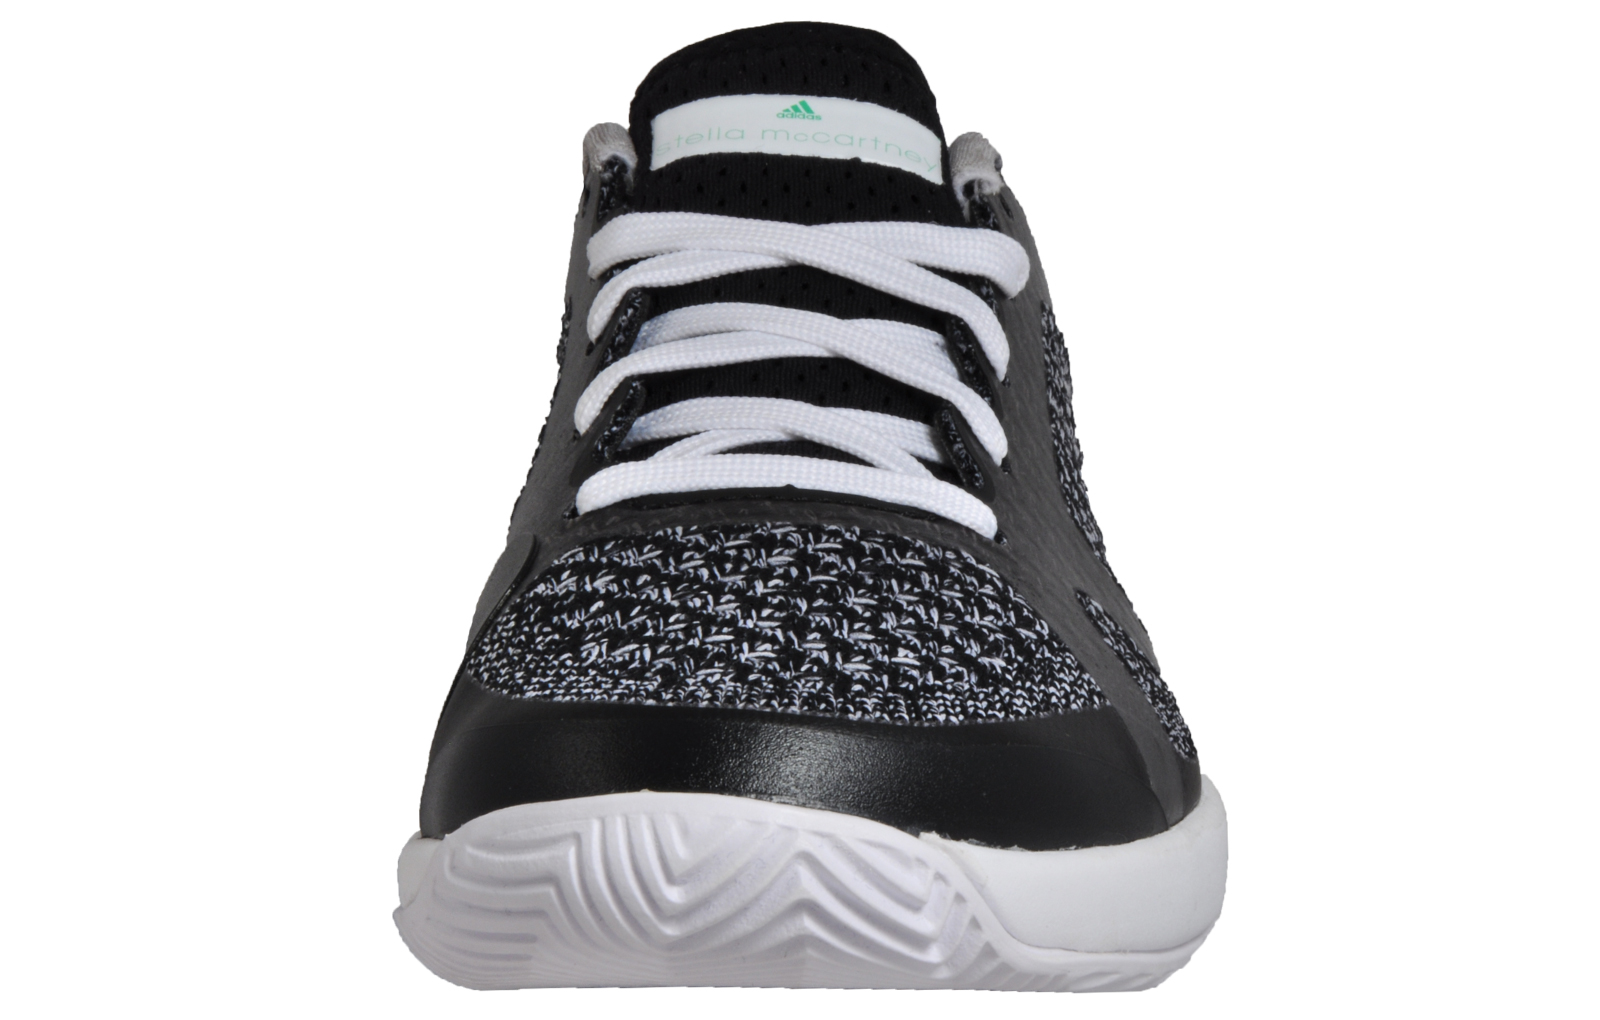 pick up 1082c 90ffb Adidas ASMC Stella McCartney Barricade Boost Women s Tennis Shoes Black